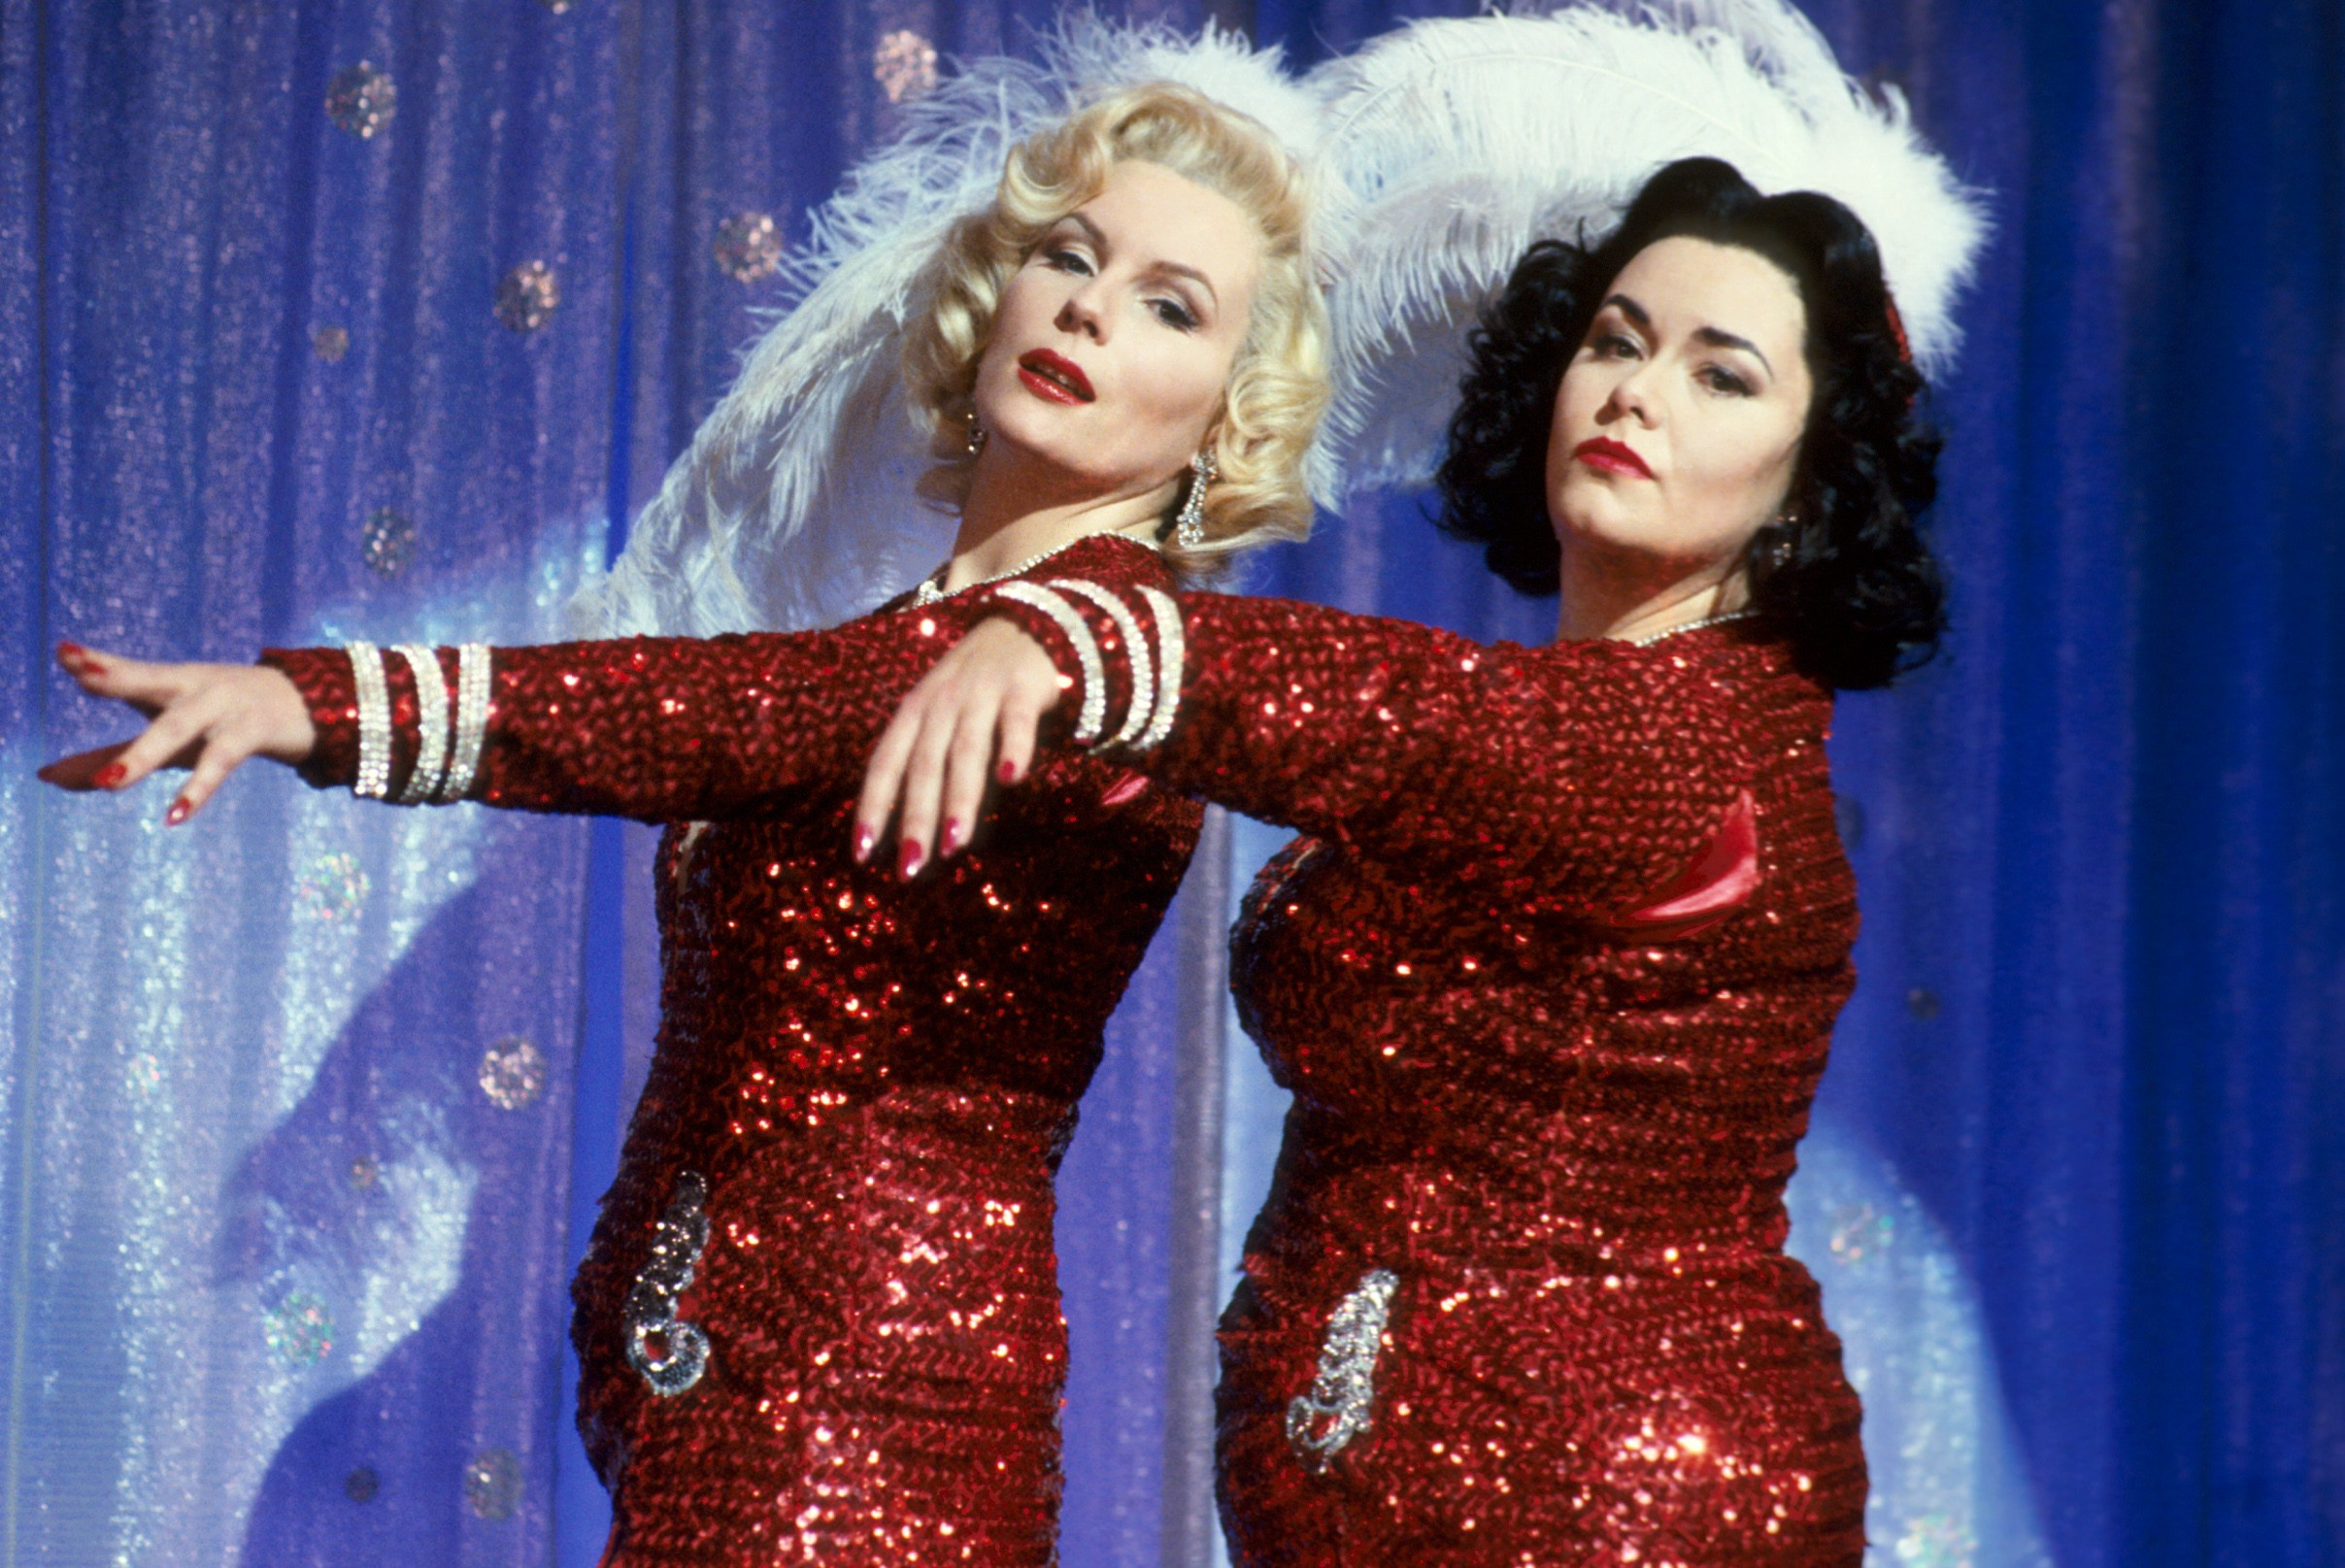 300 Years of French and Saunders (BBCPictures,mh)